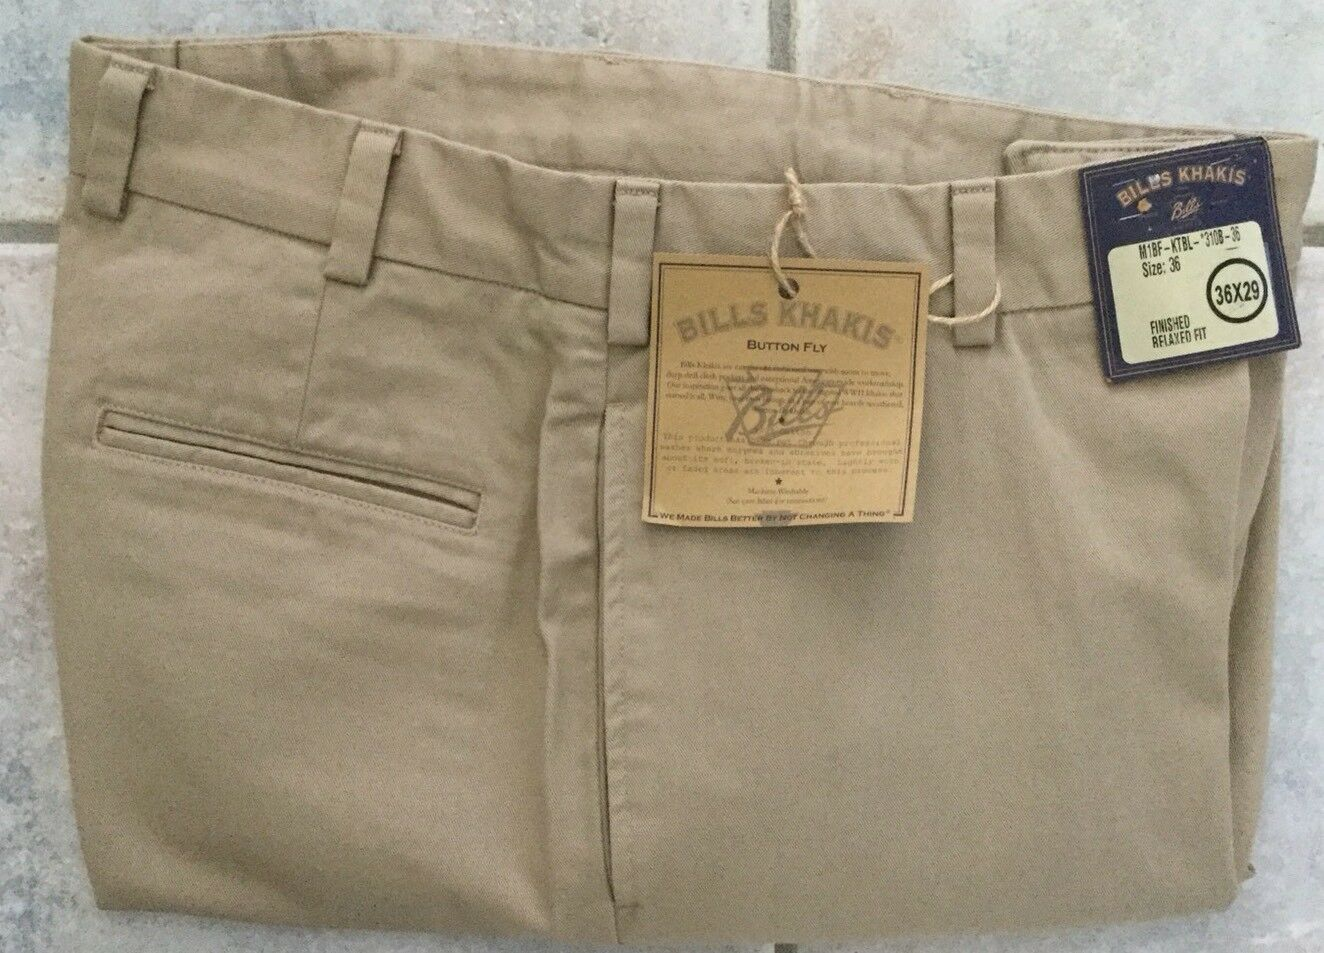 NWT-Bills khakis M1BF-KTBL Size 34x30 Button Fly RELAXED KHAKI MSRP